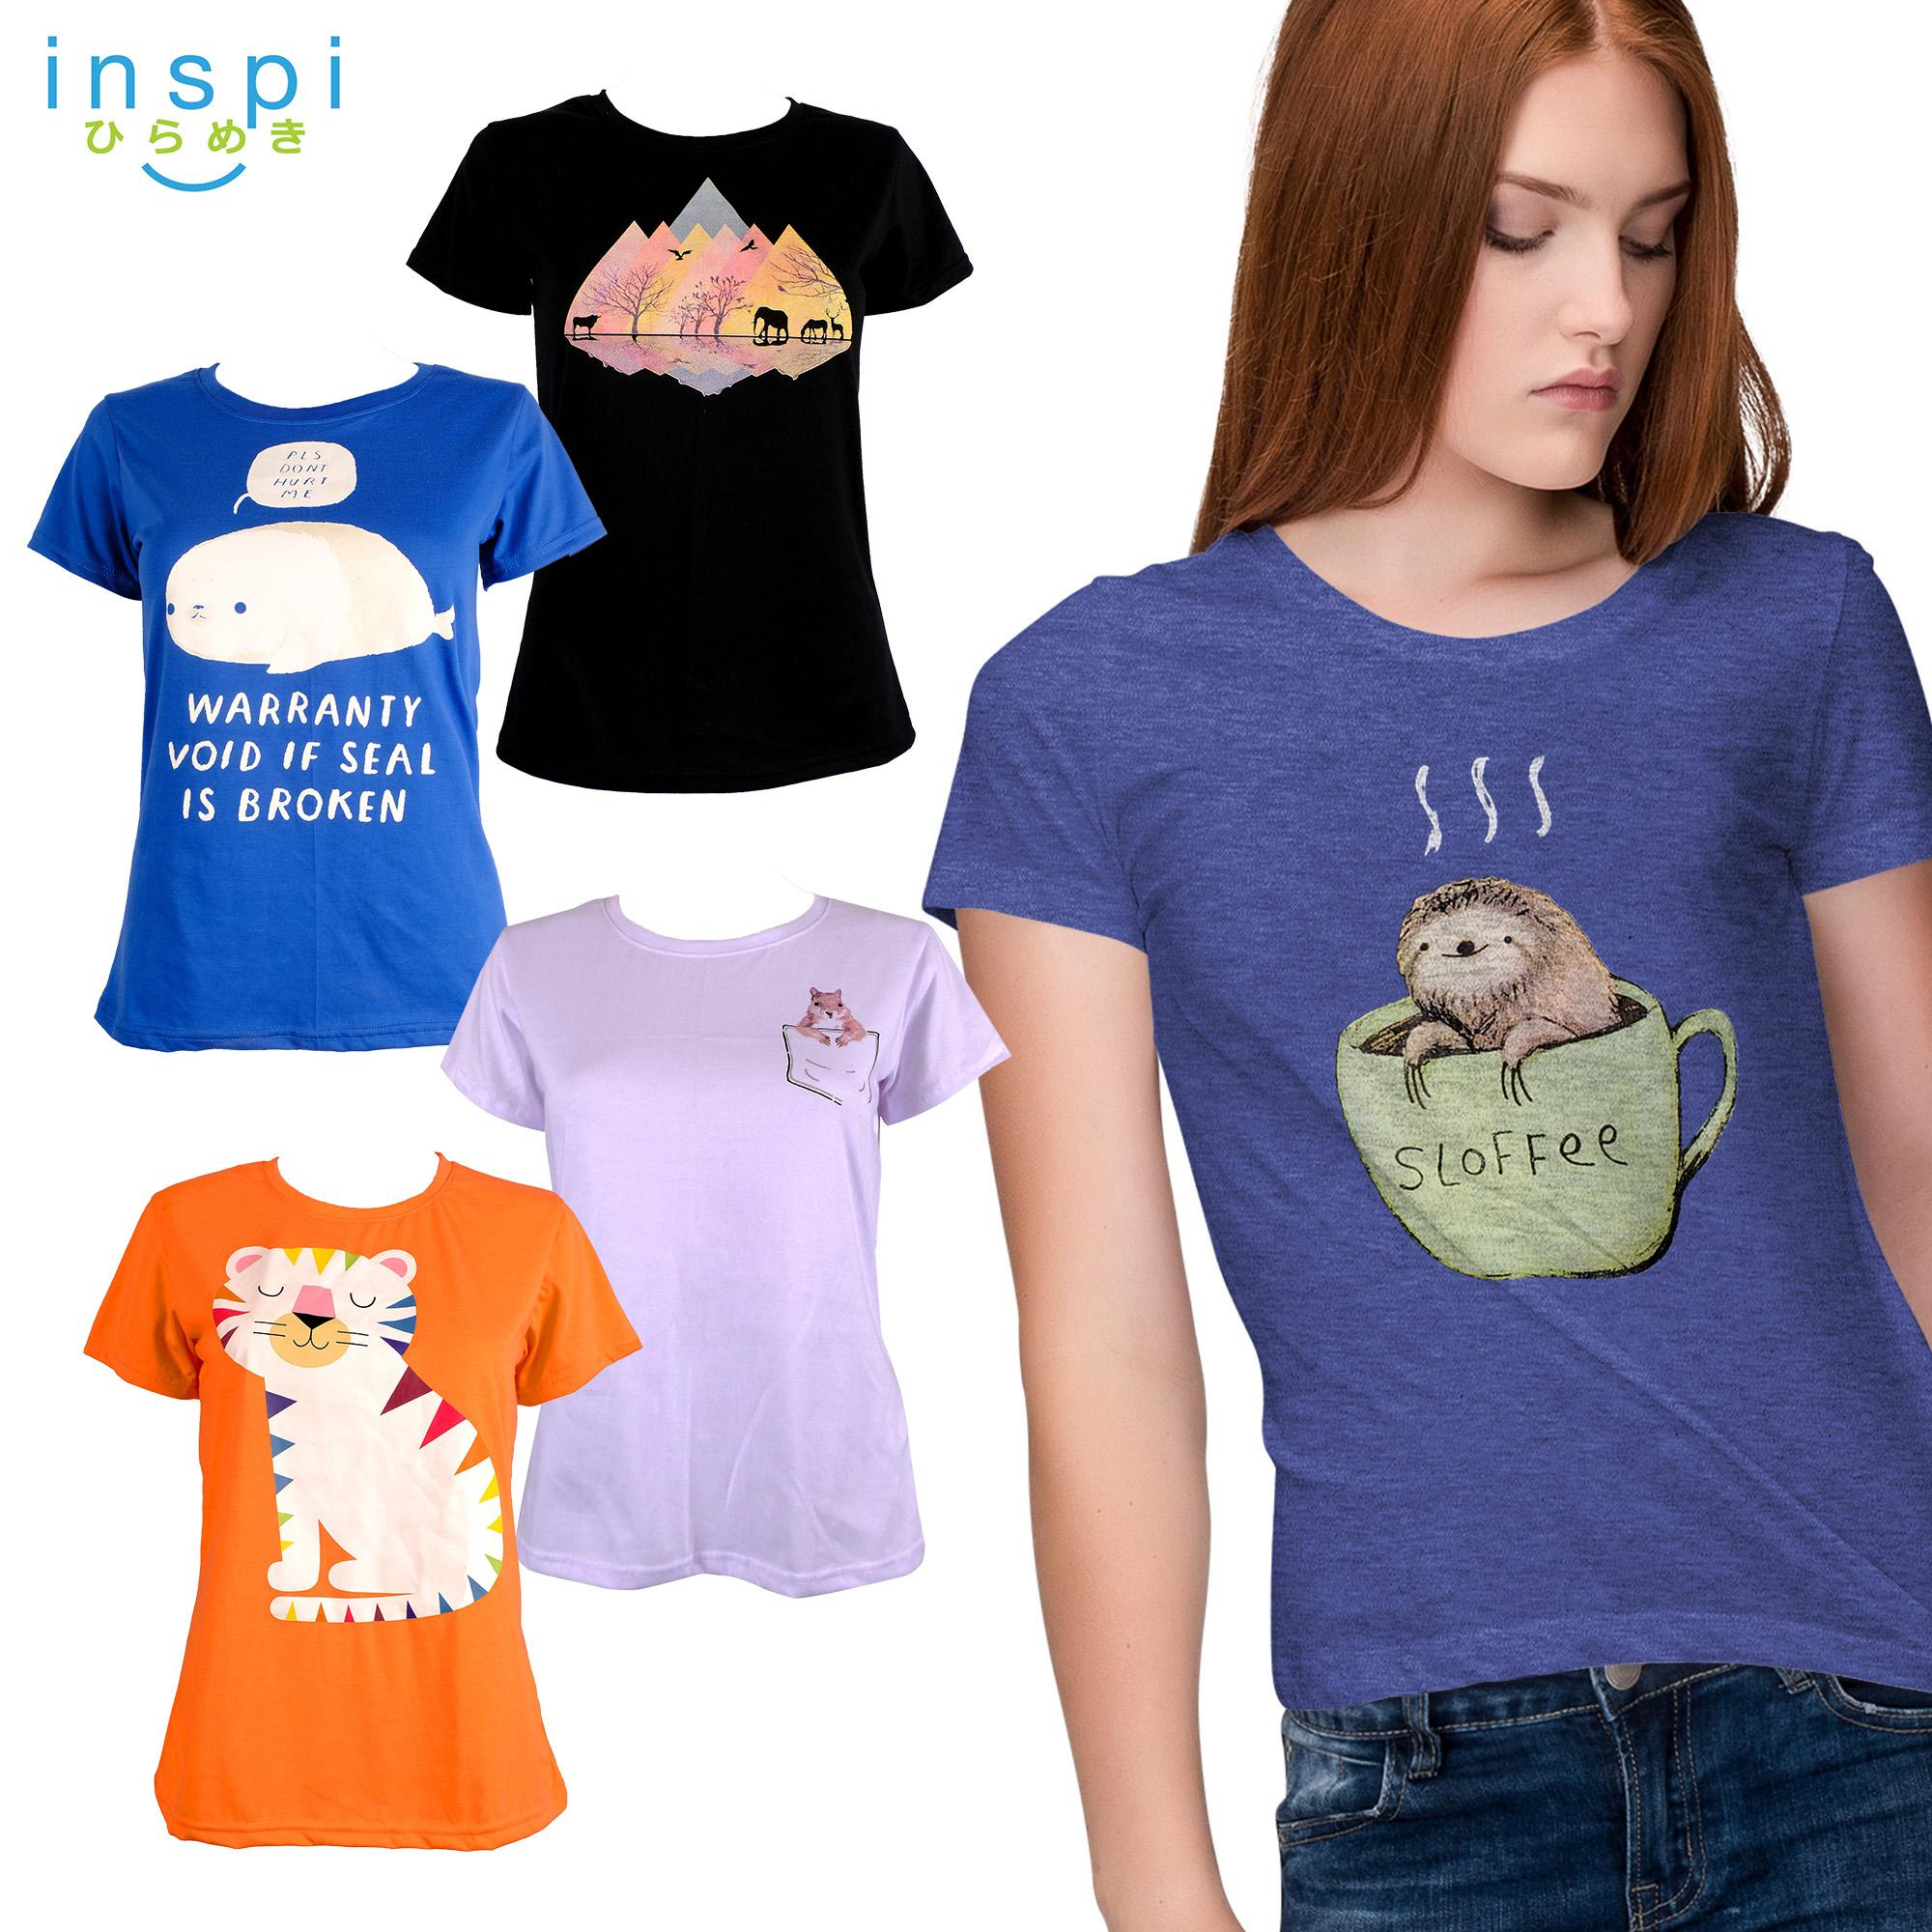 90c68d73146 INSPI Tees Ladies Pet Collection tshirt printed graphic tee Ladies t shirt  shirts women tshirts for